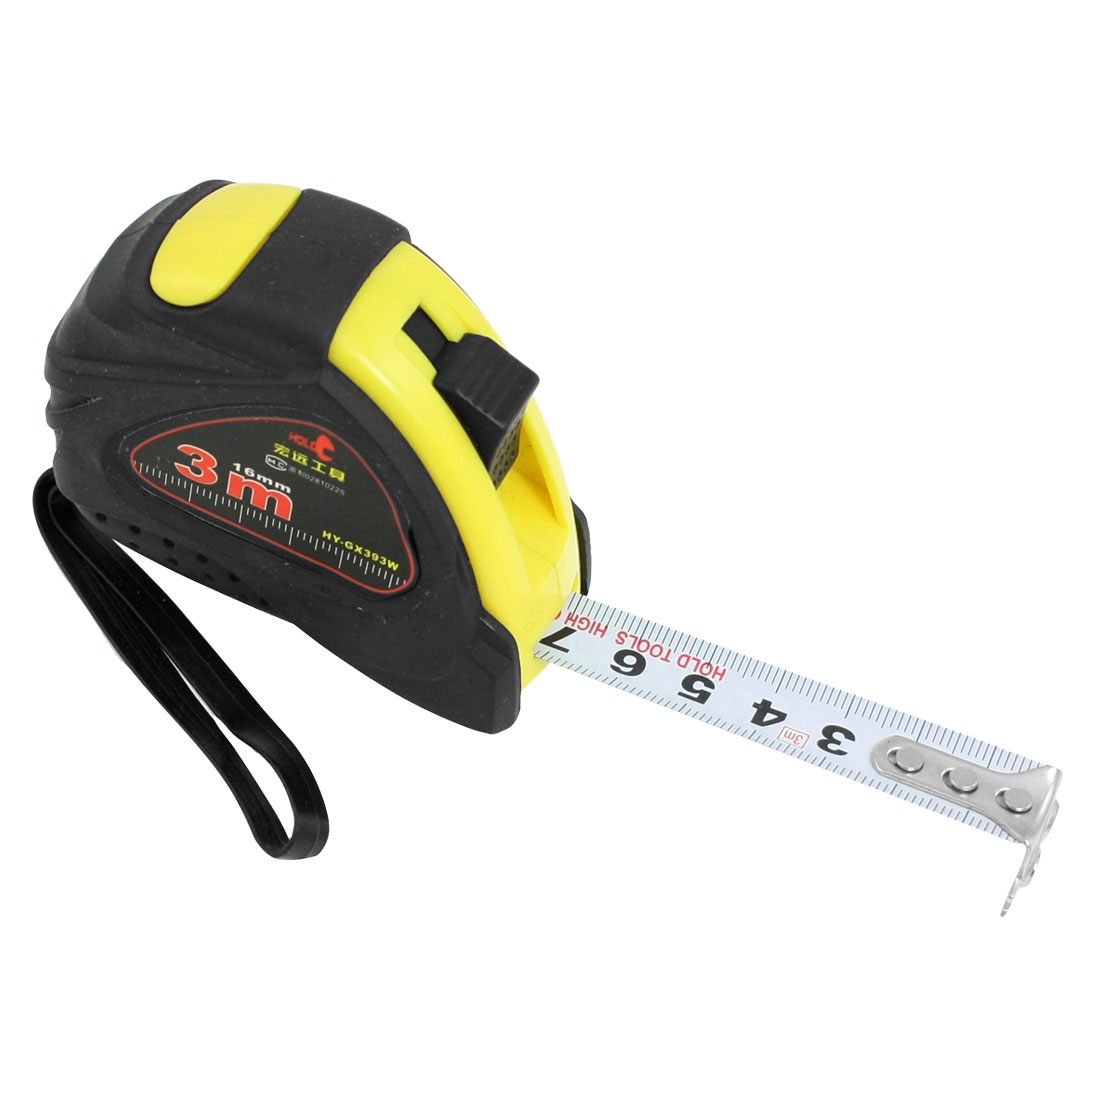 "5/8"" x 3 Meters Self Retract Flexible Tape Measure Ruler Black Yellow"